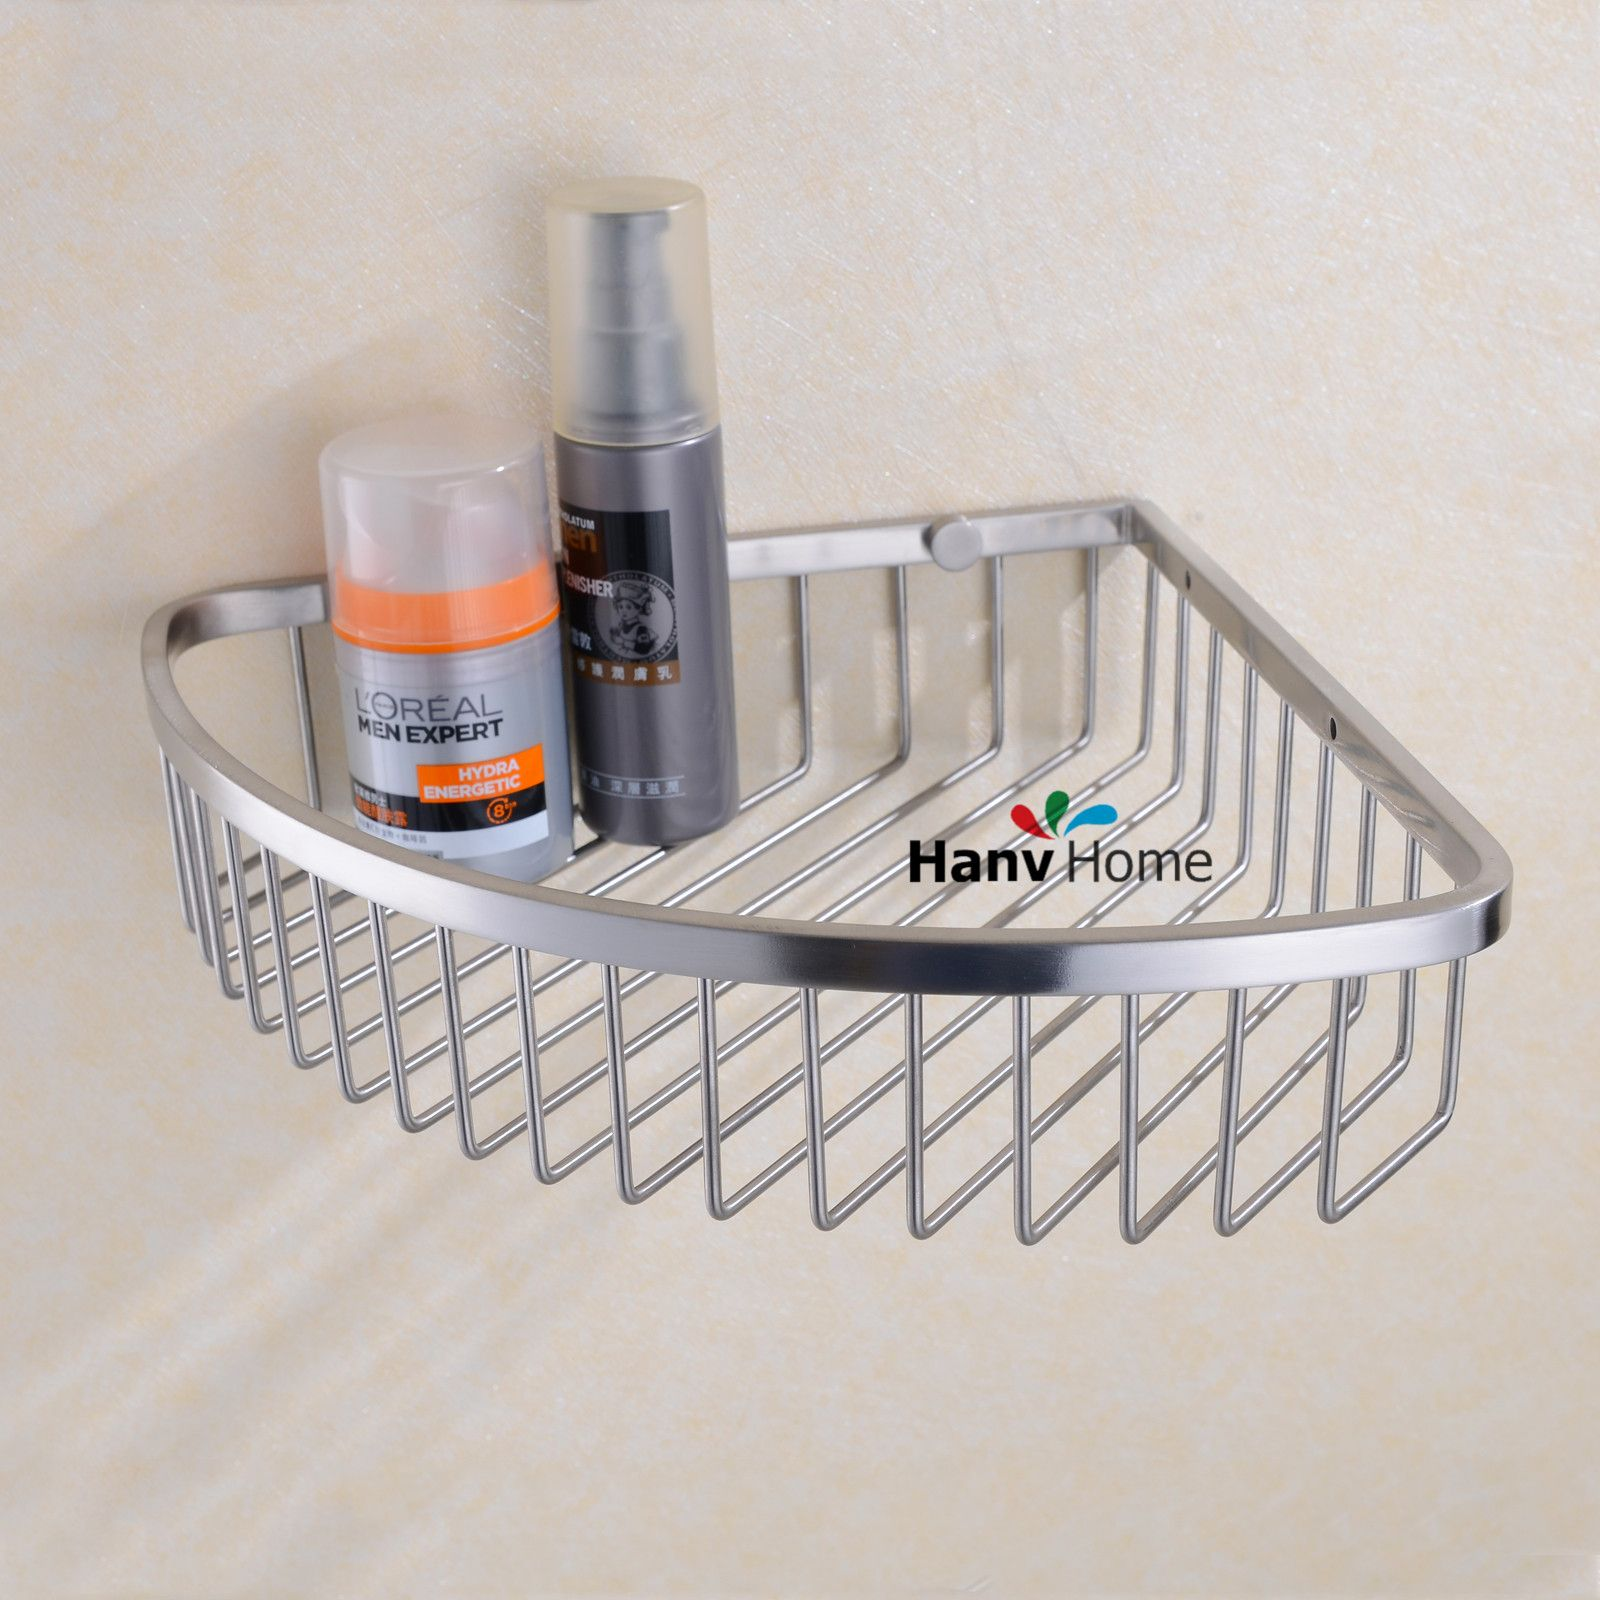 Brushed Nickel Stainless Steel Corner Shower Basket Construction